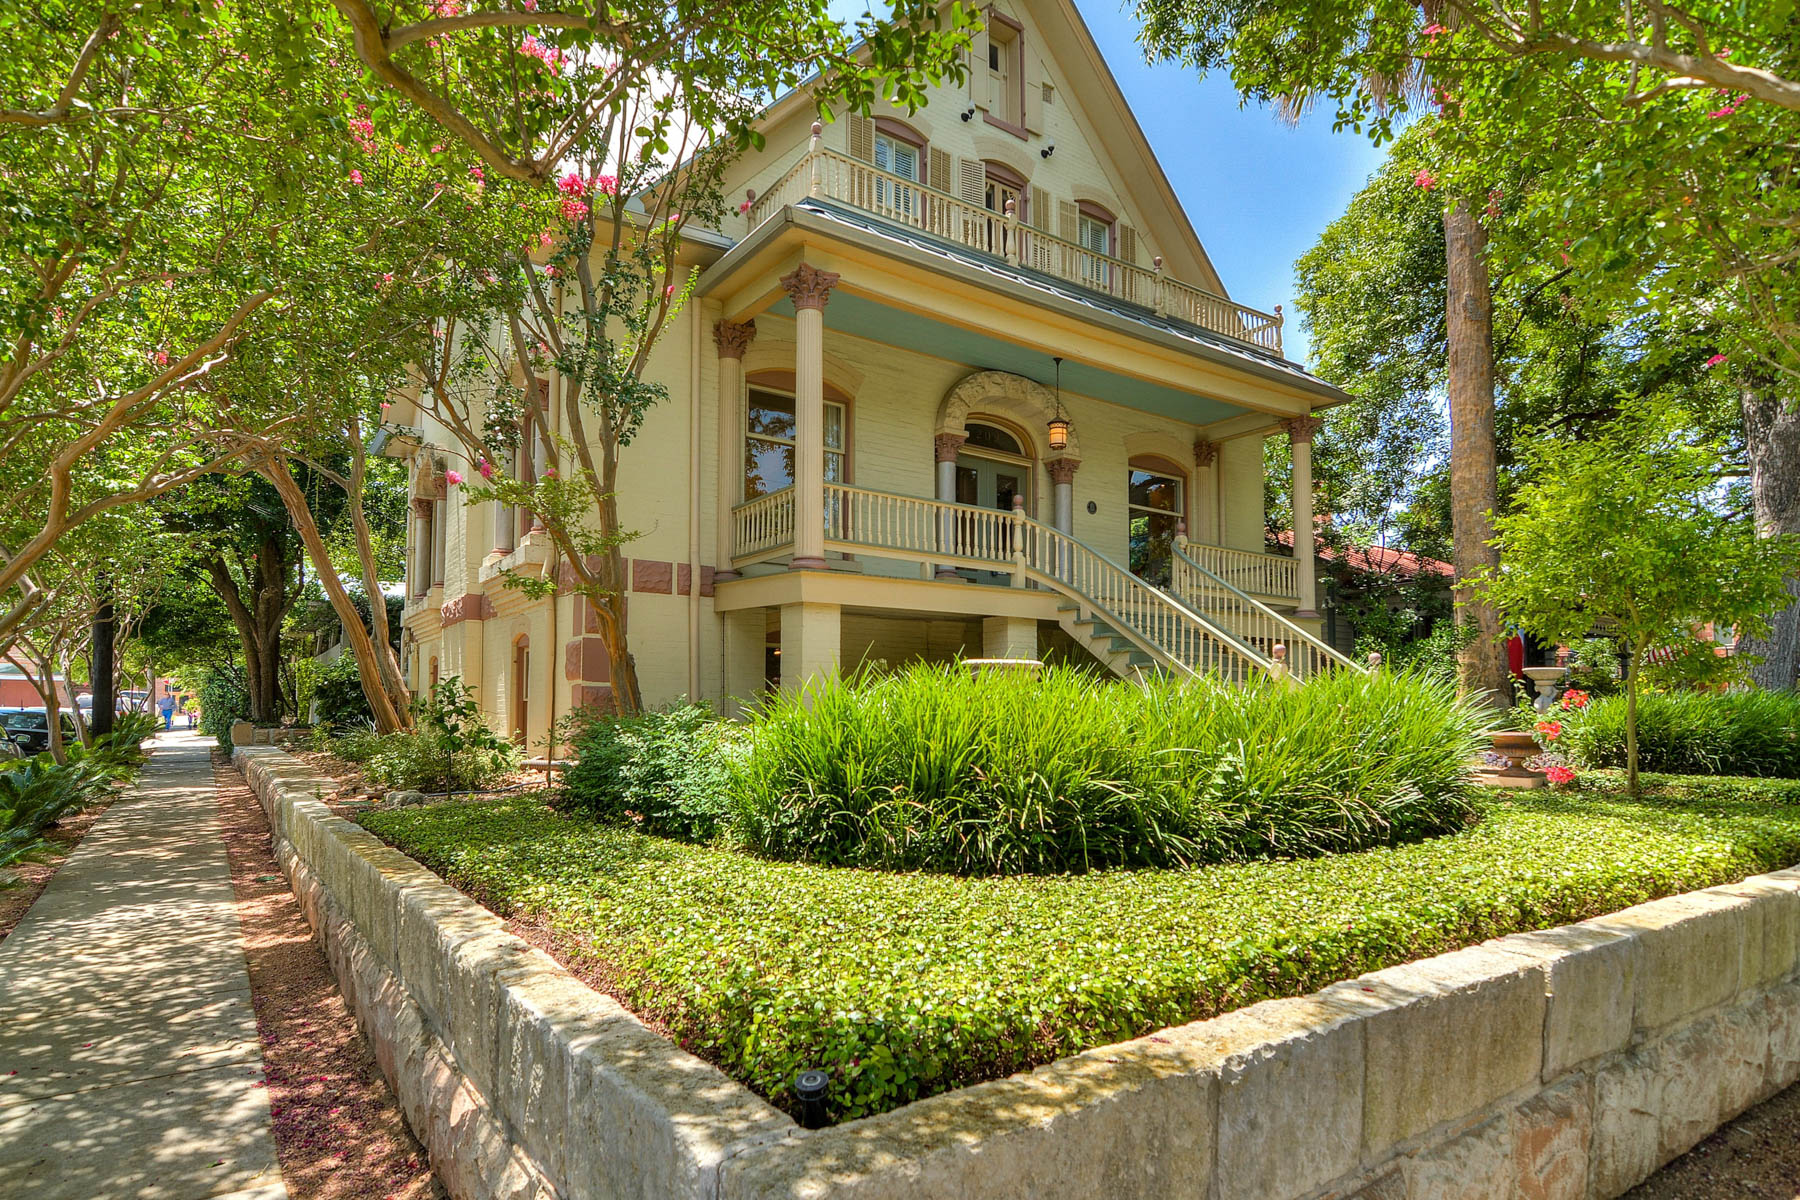 Maison unifamiliale pour l Vente à Majestic, Yet Wonderfully Urban King William Home 202 Madison St King William, San Antonio, Texas, 78204 États-Unis